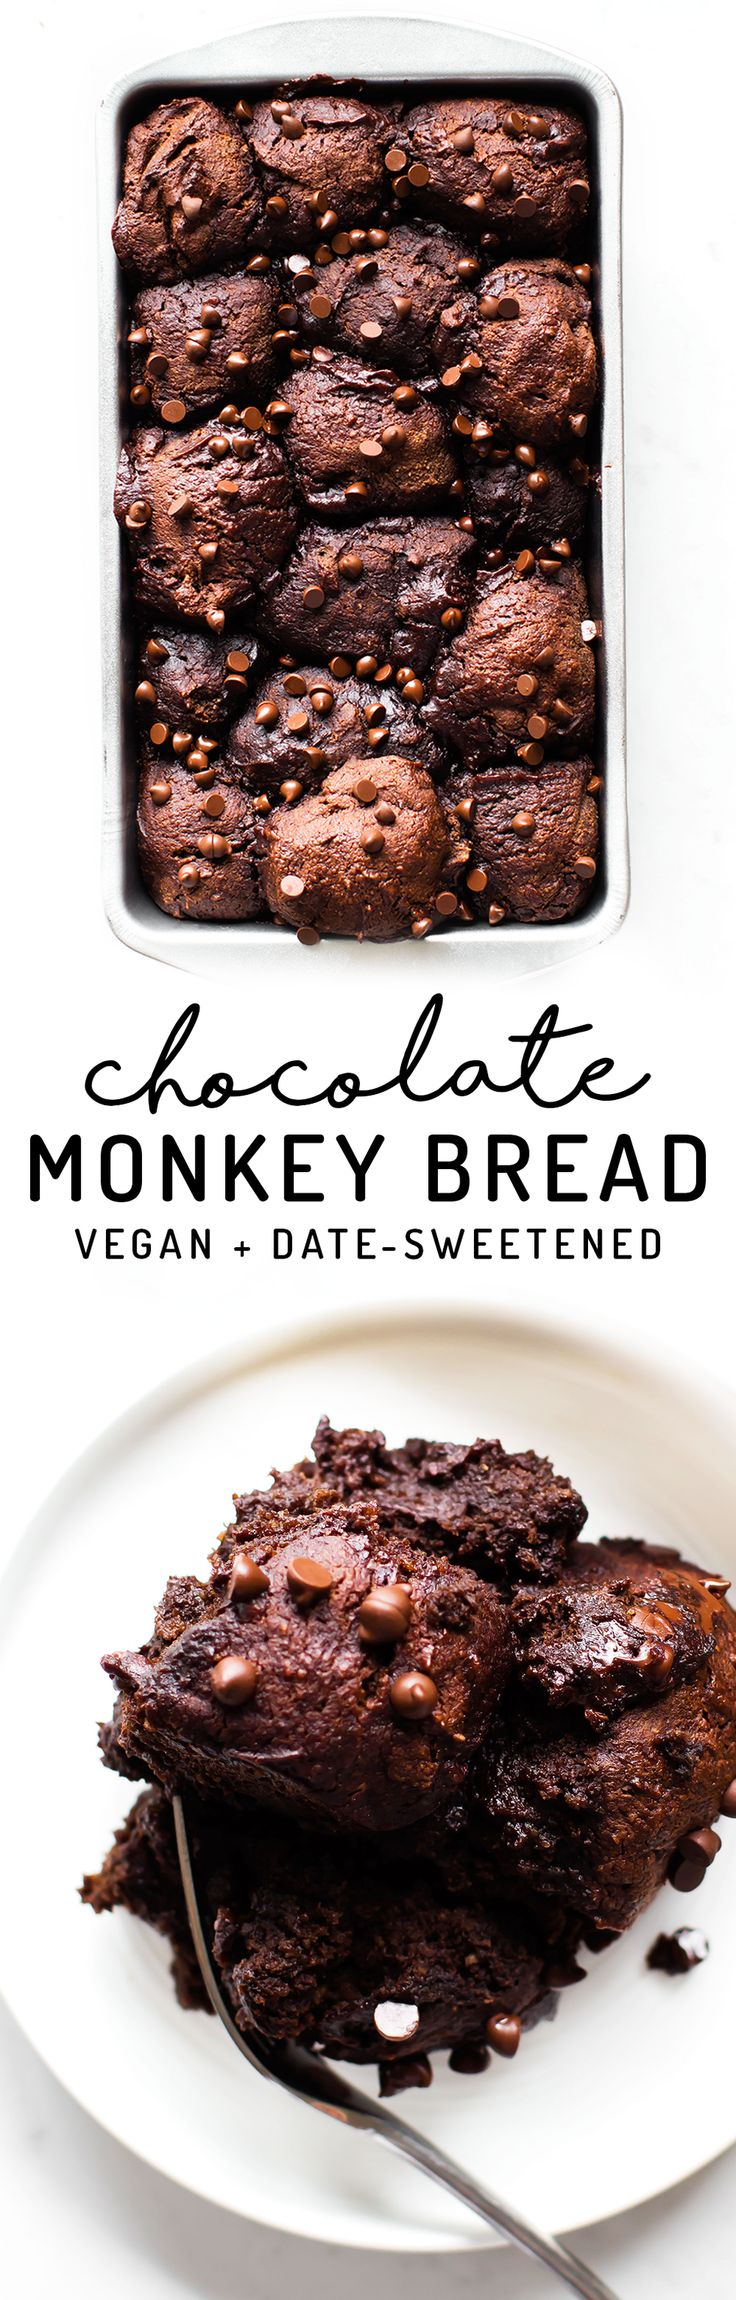 Monkey bread and brownie collide in a sticky sweet loaf of Chocolate Monkey Bread without sugar or grains for a healthier-than-it-looks fudgy dessert feast!